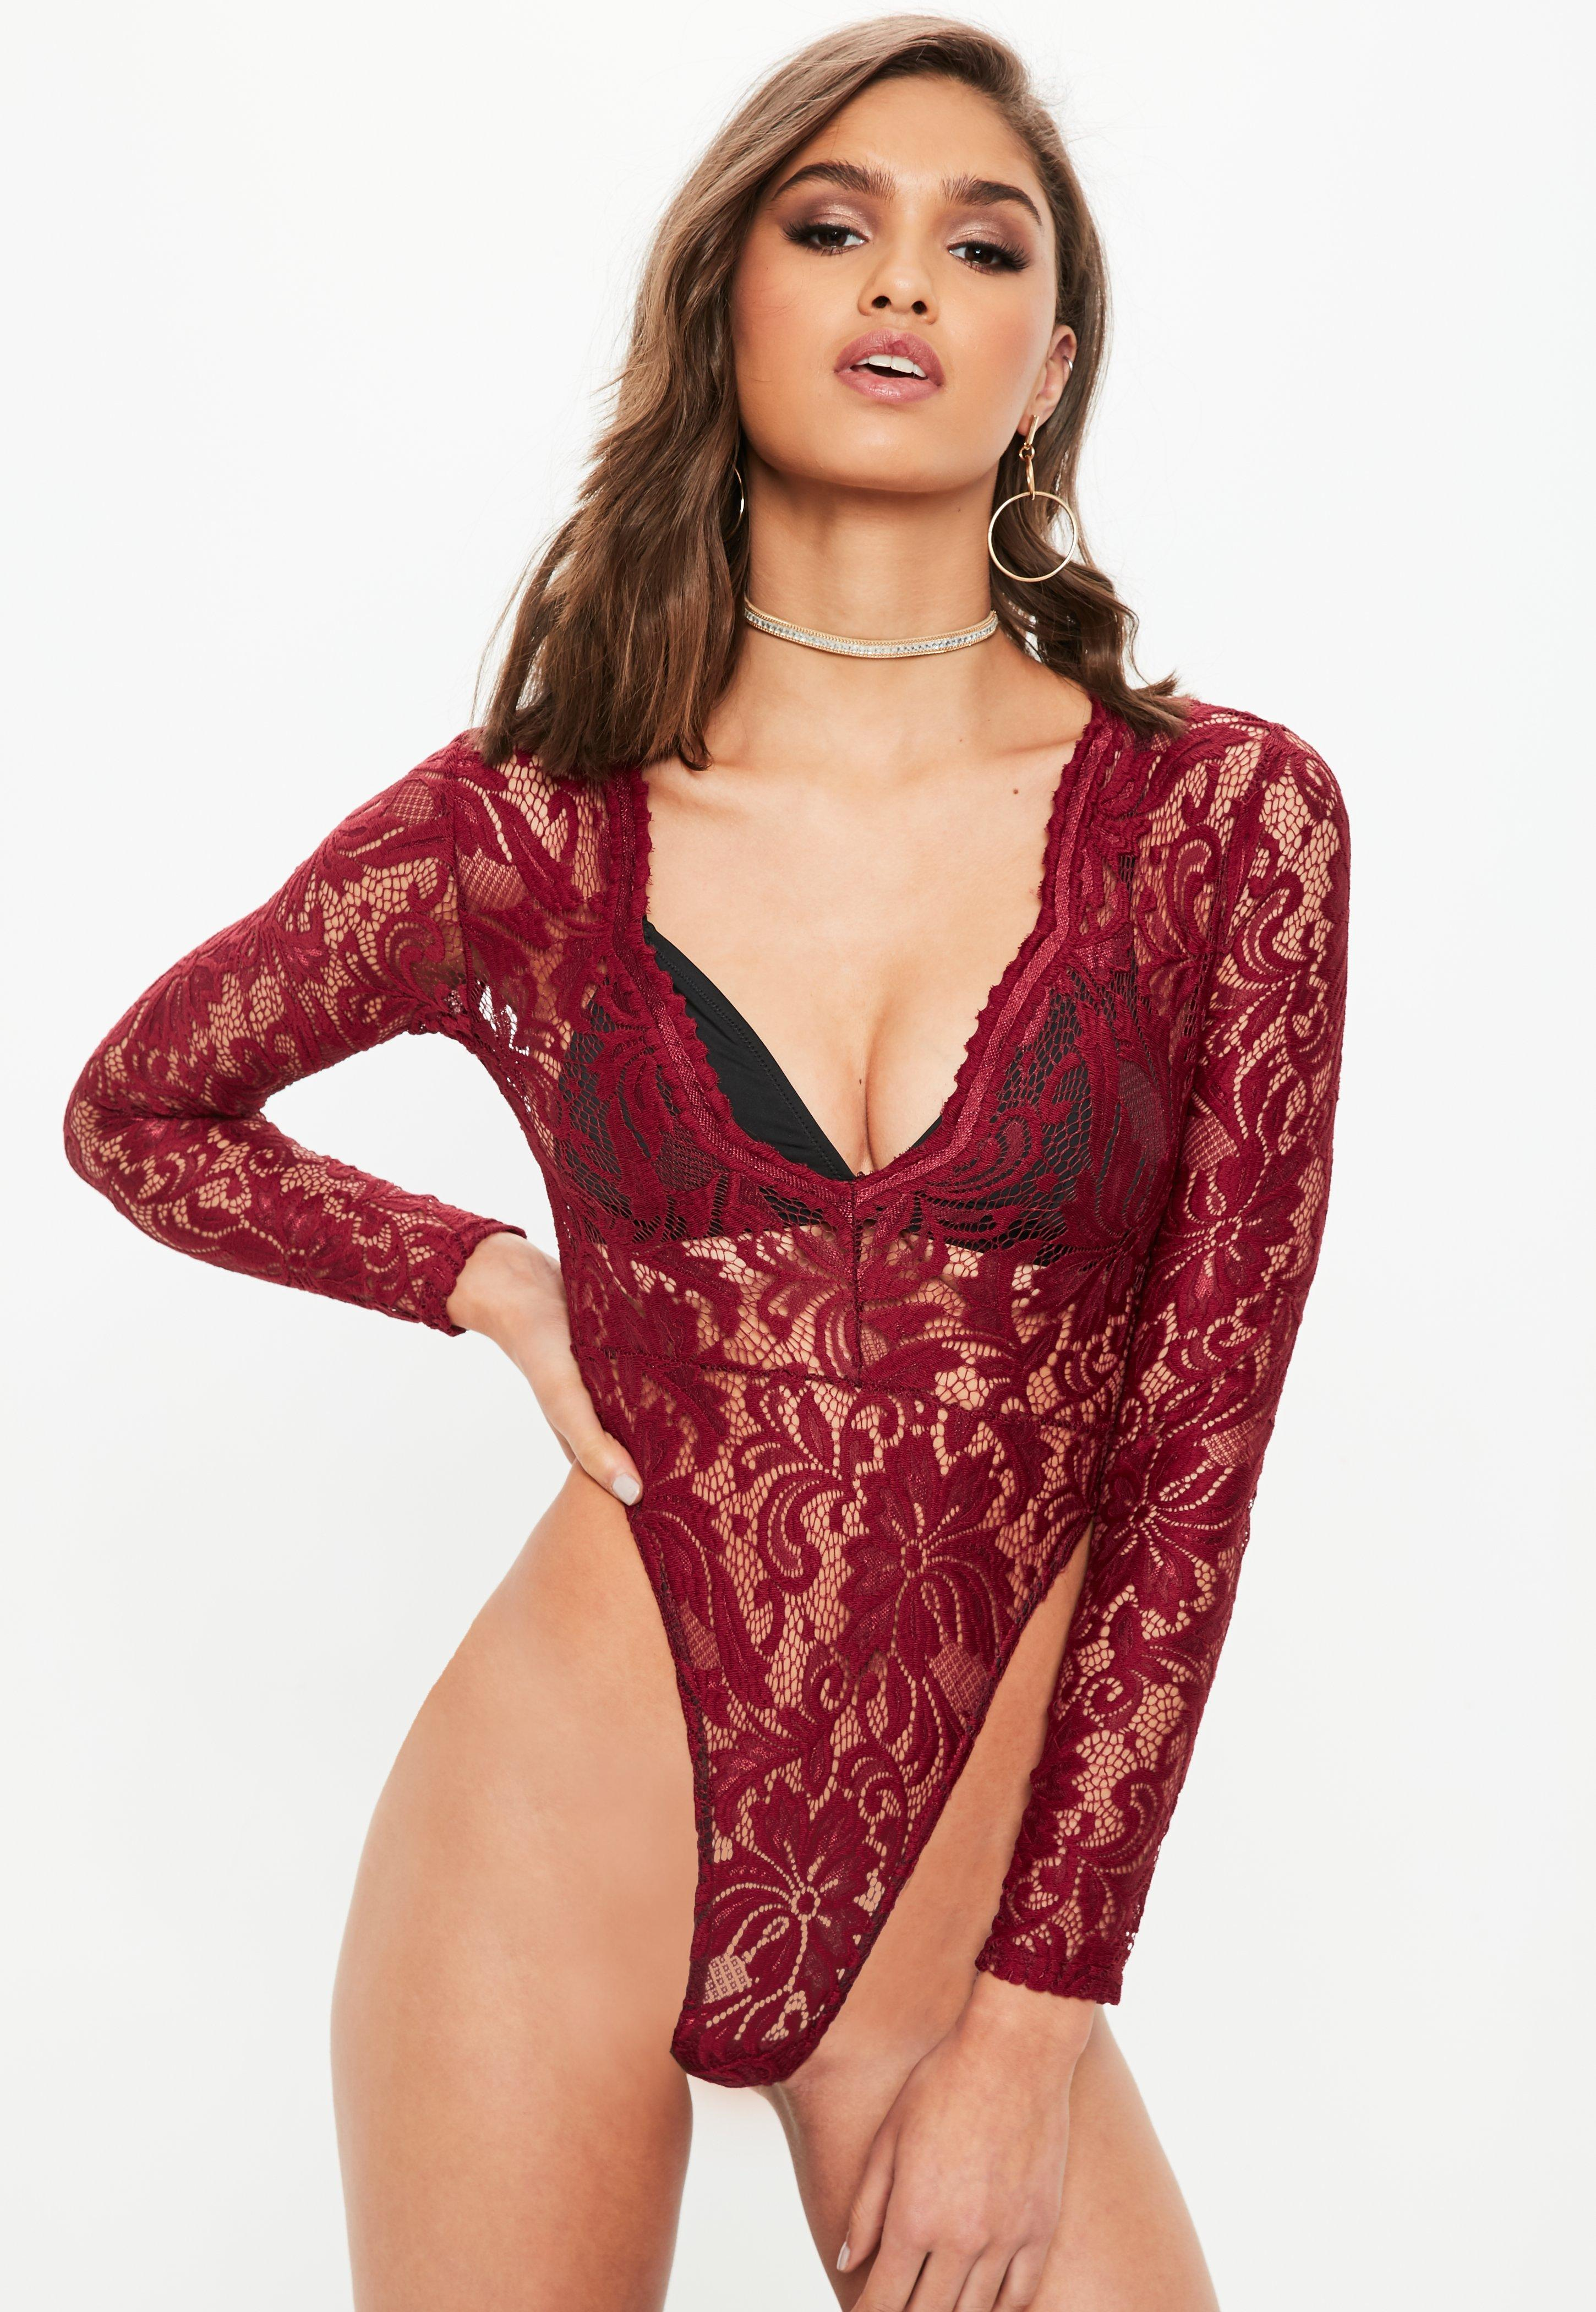 45408f2aa0 Missguided Burgundy High Leg Lace Bodysuit in Red - Lyst